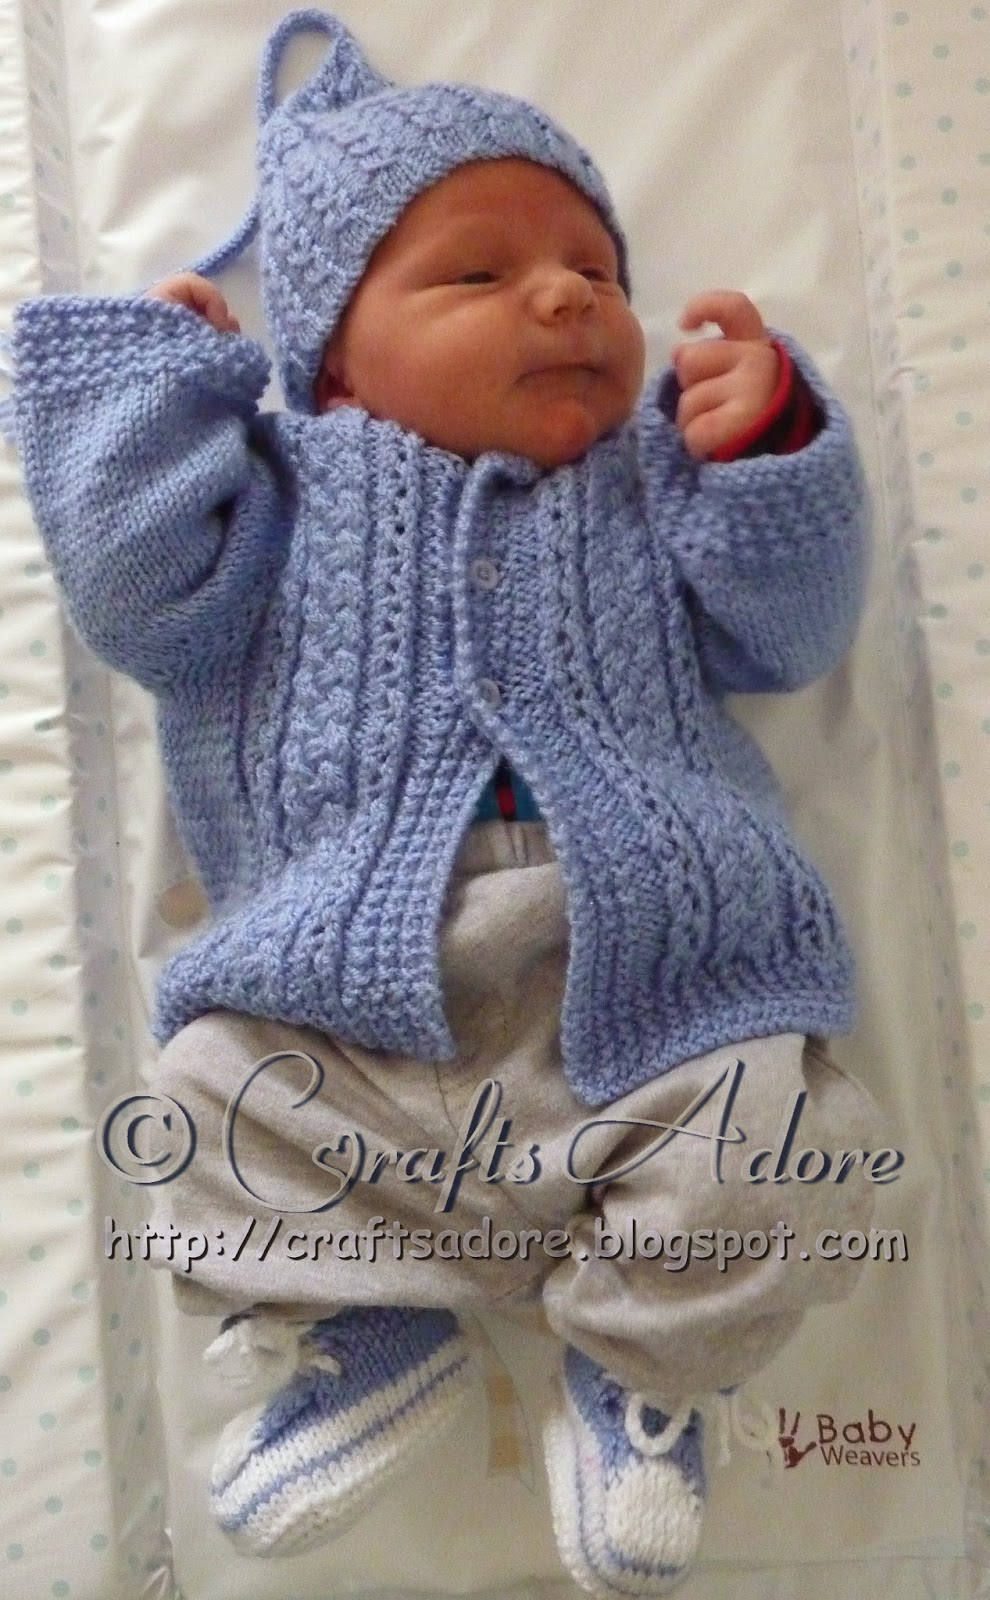 Knitting Patterns Free Baby : CraftsAdore: